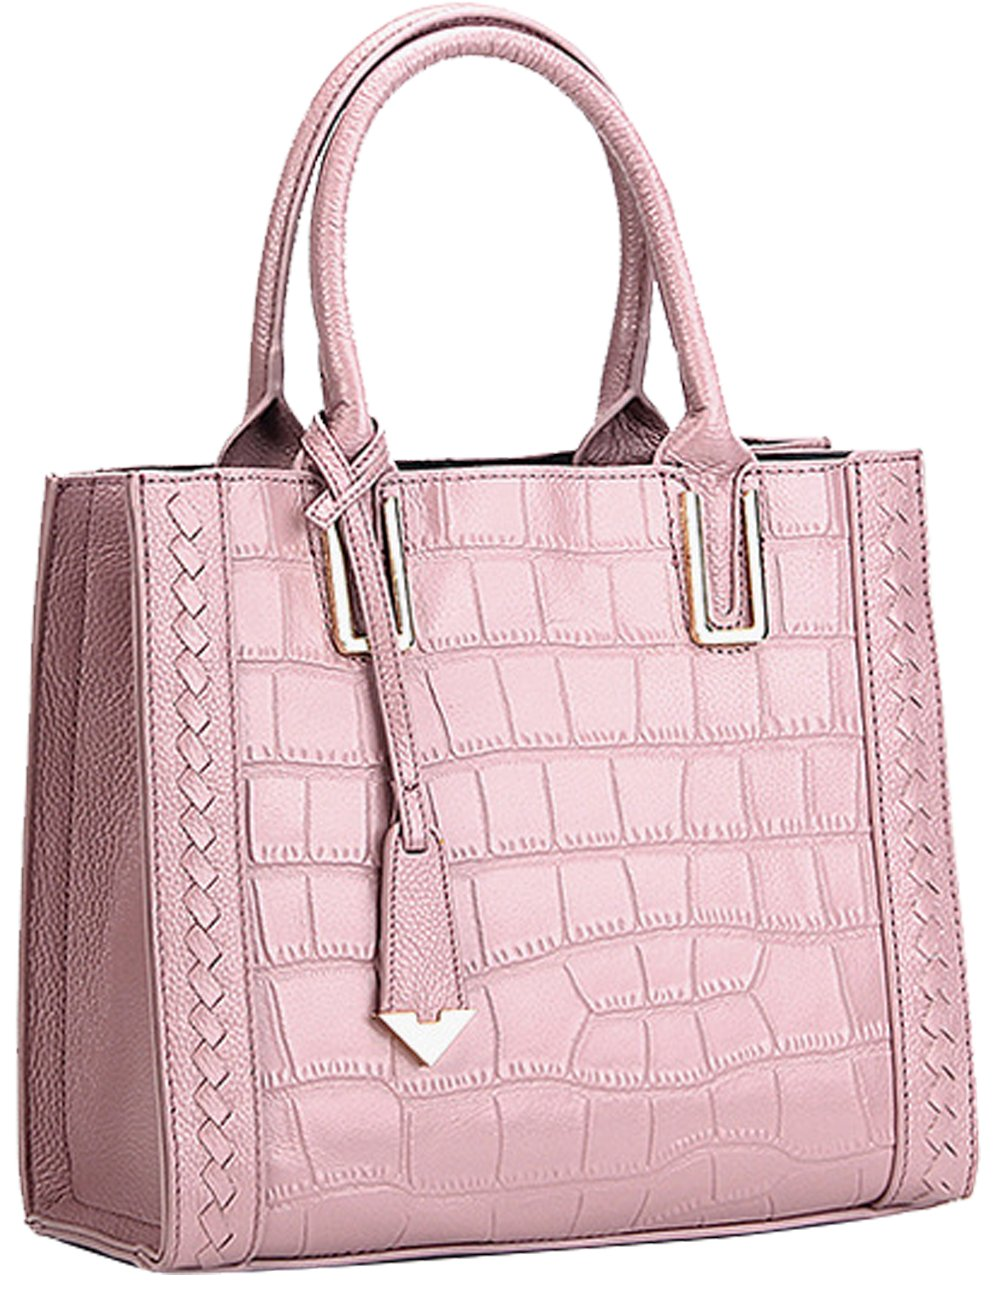 Menschwear Womens Genuine Leather Top Handle Satchel Bag Pink by Menschwear (Image #1)